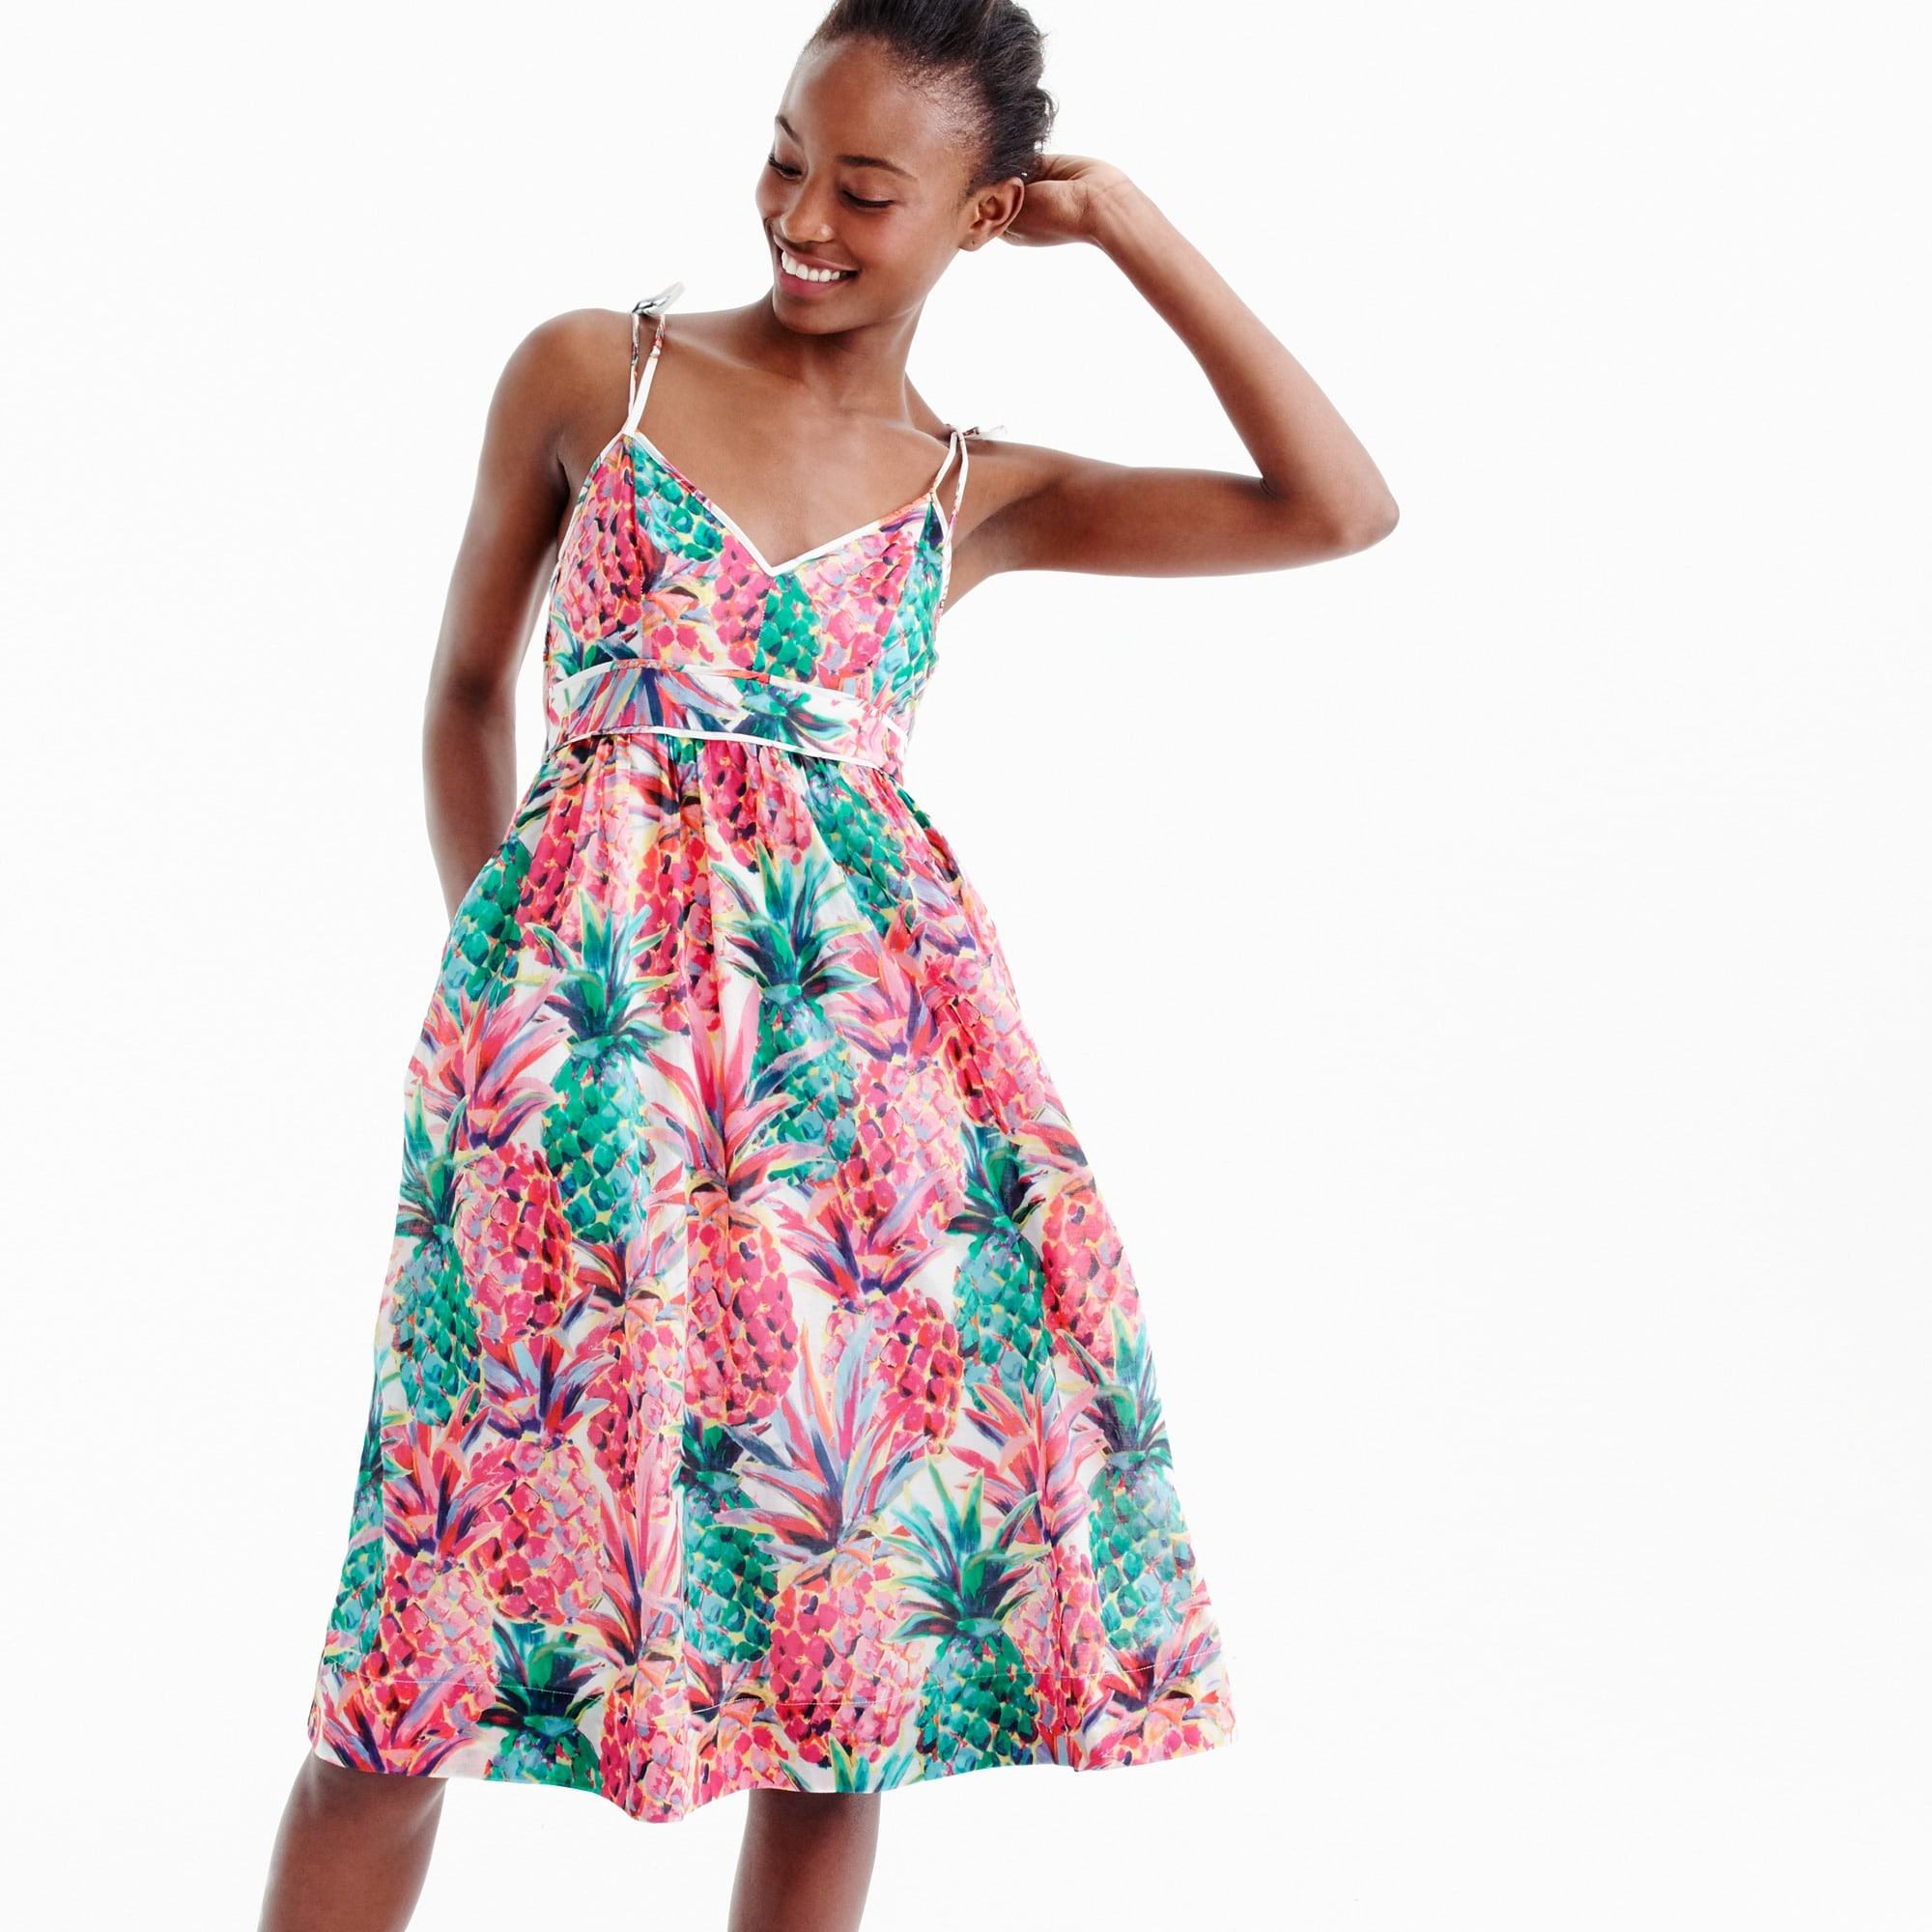 Petite spaghetti-strap dress in Ratti® painted pineapple